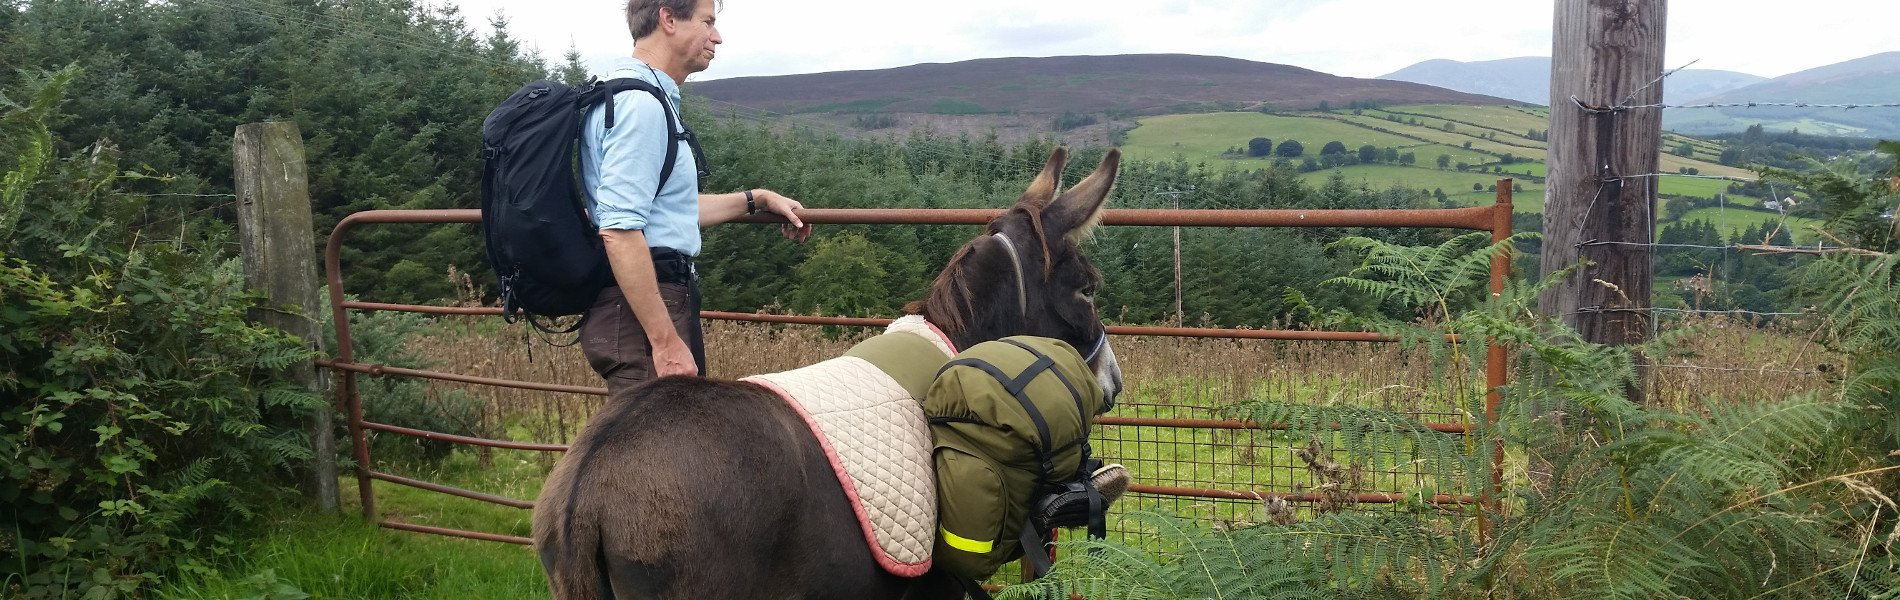 Donkey walking in Wicklow, alternative holidays